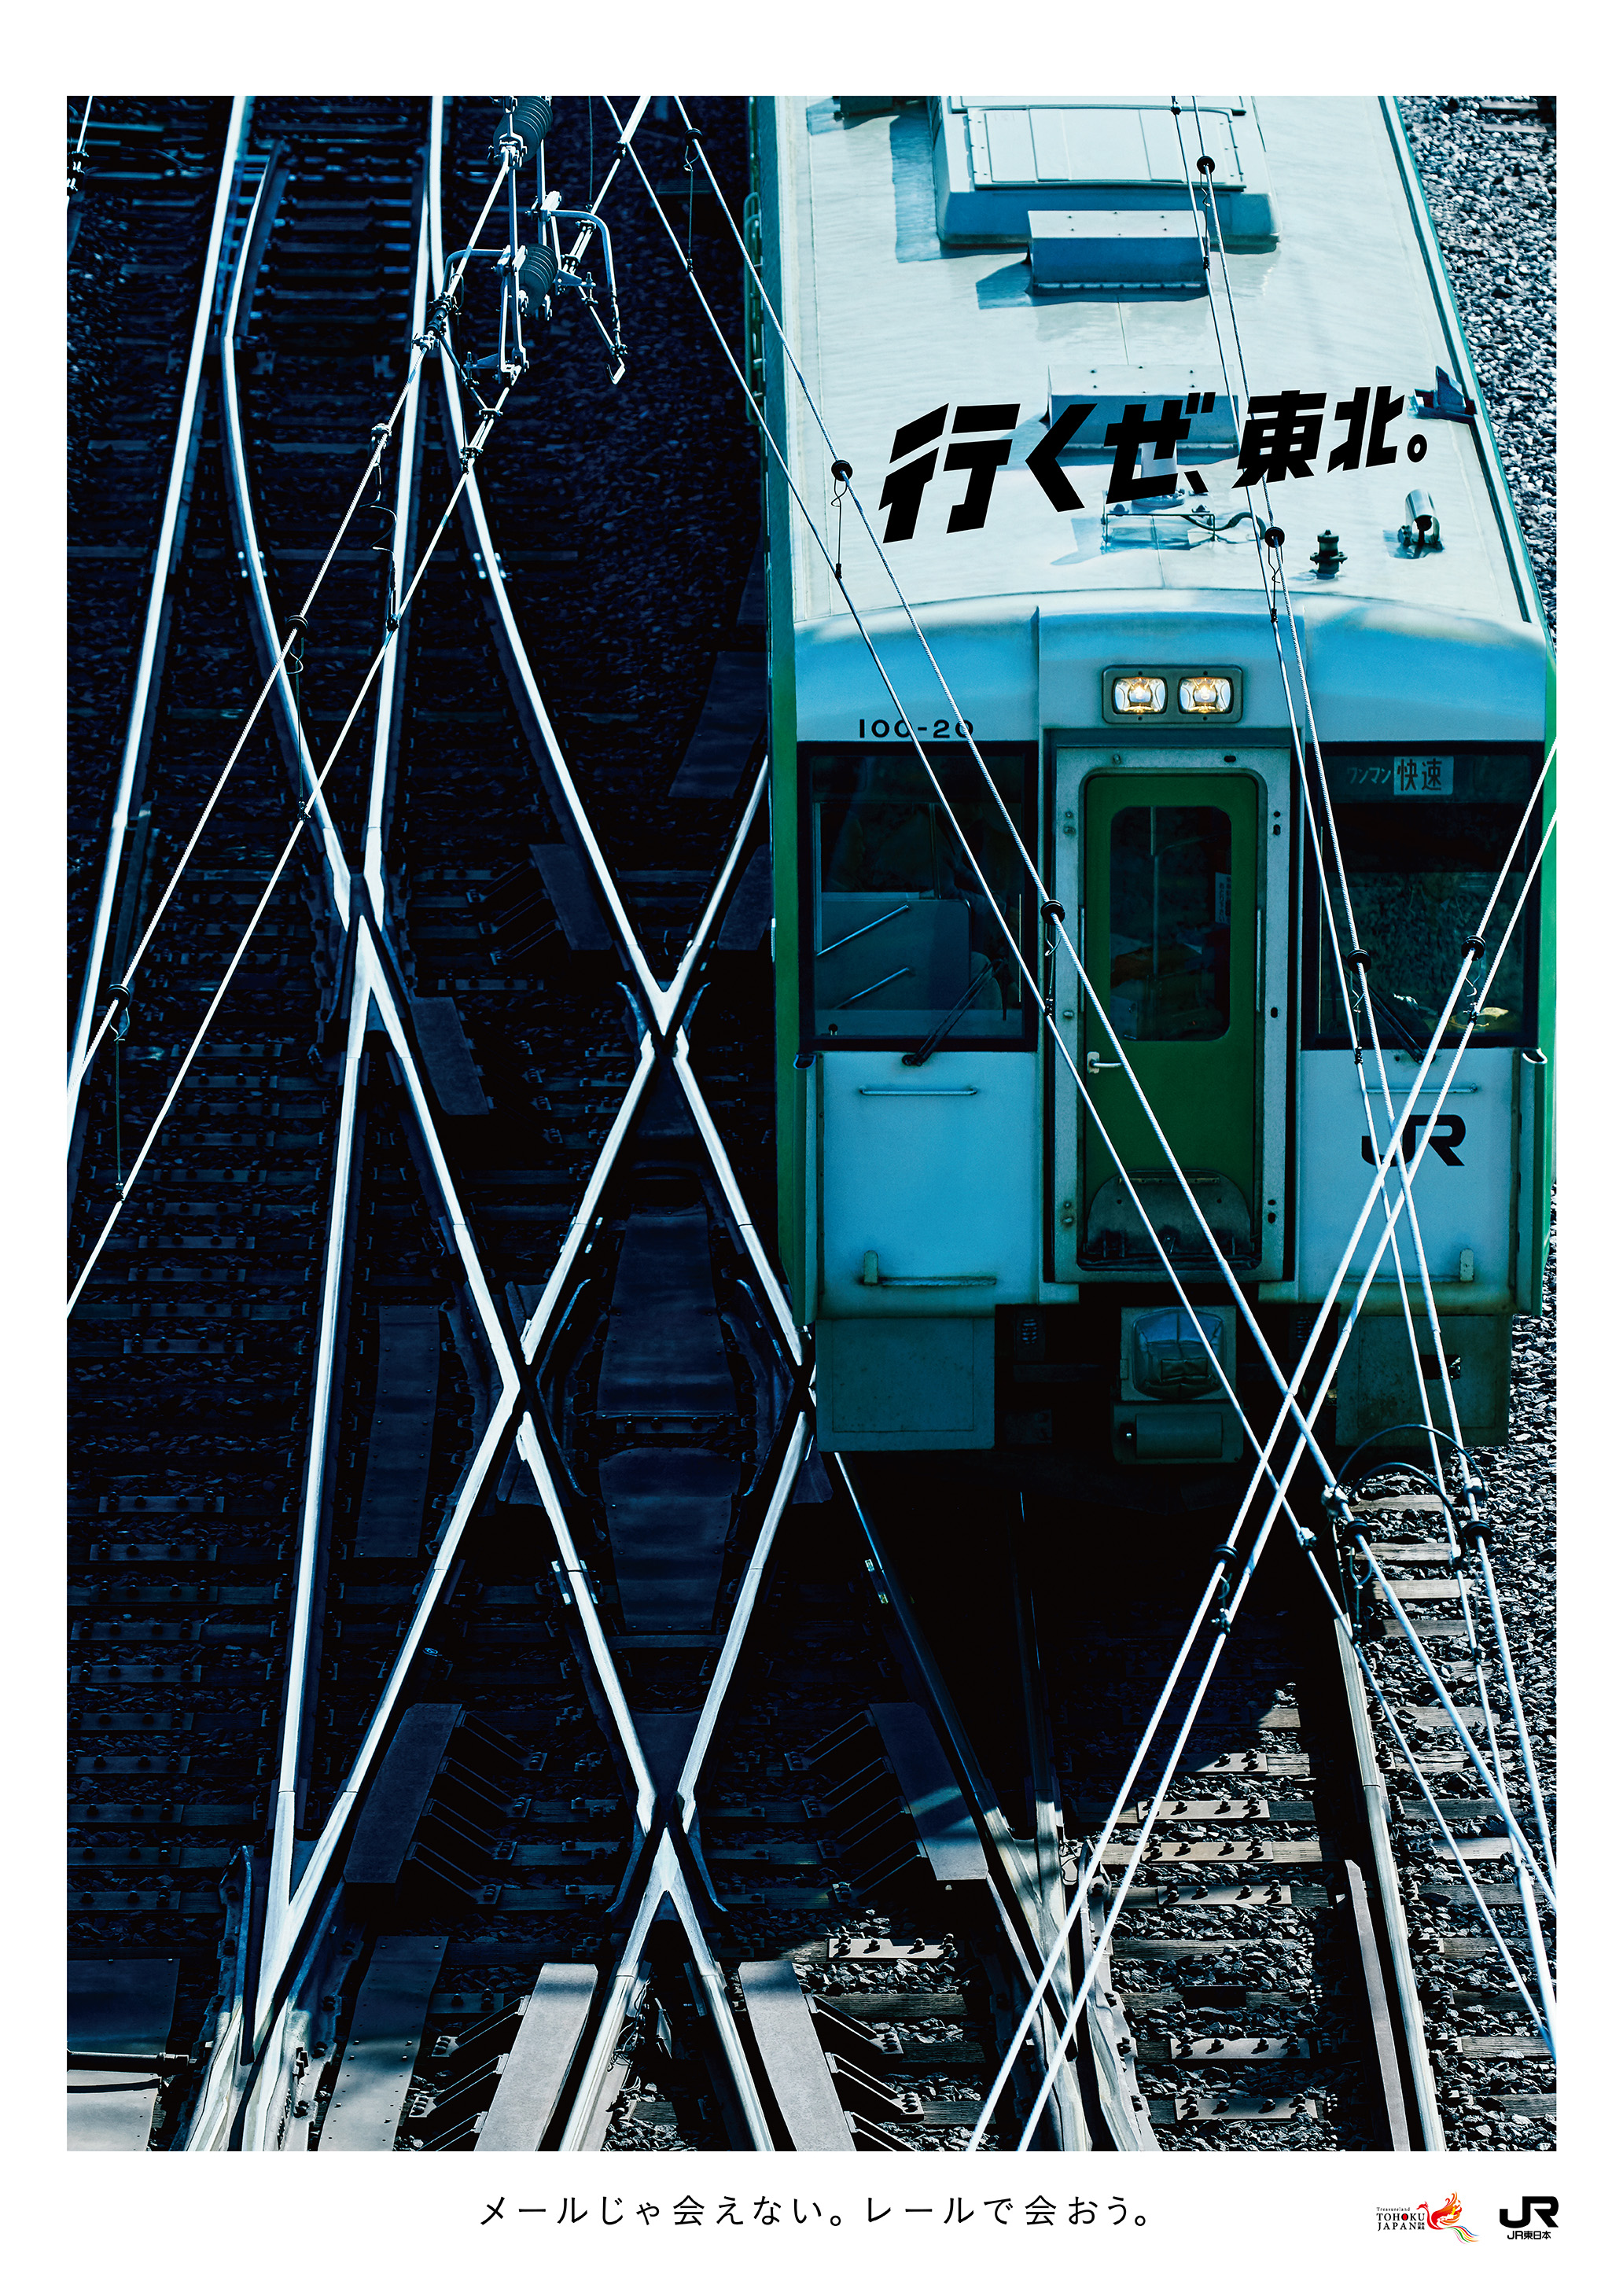 JR_ikuze_2016_summer_B1_train_160512_fin_ol